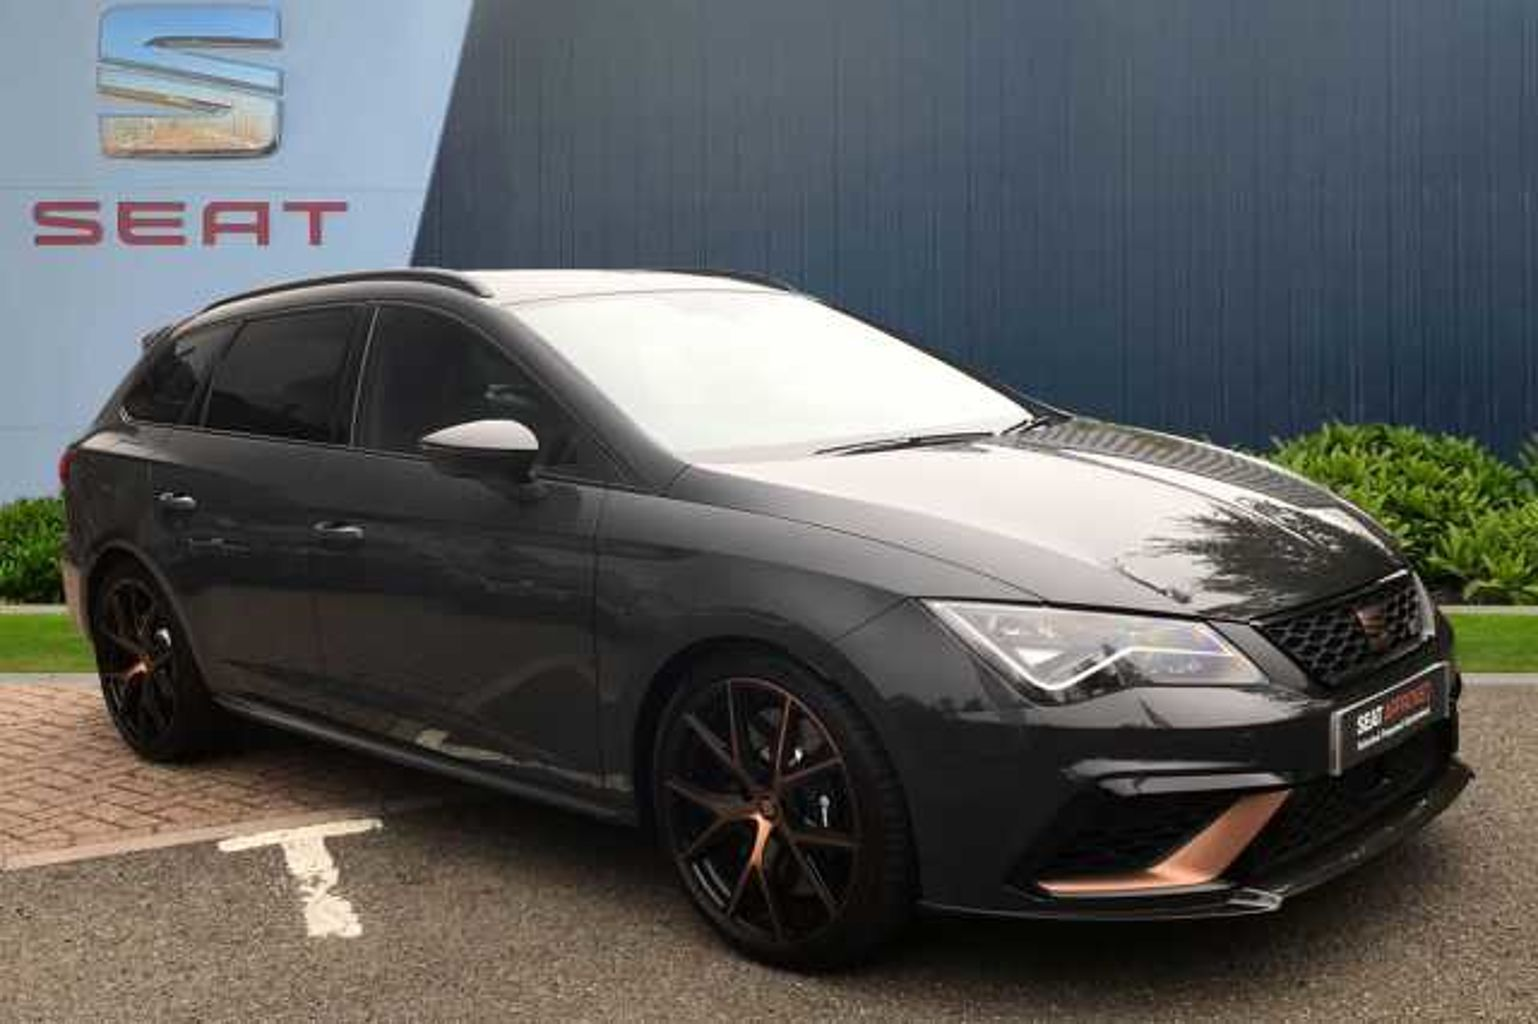 SEAT Leon Sport Tourer Special Editions 2.0 TSI Cupra R ST 300 5dr DSG 4Drive